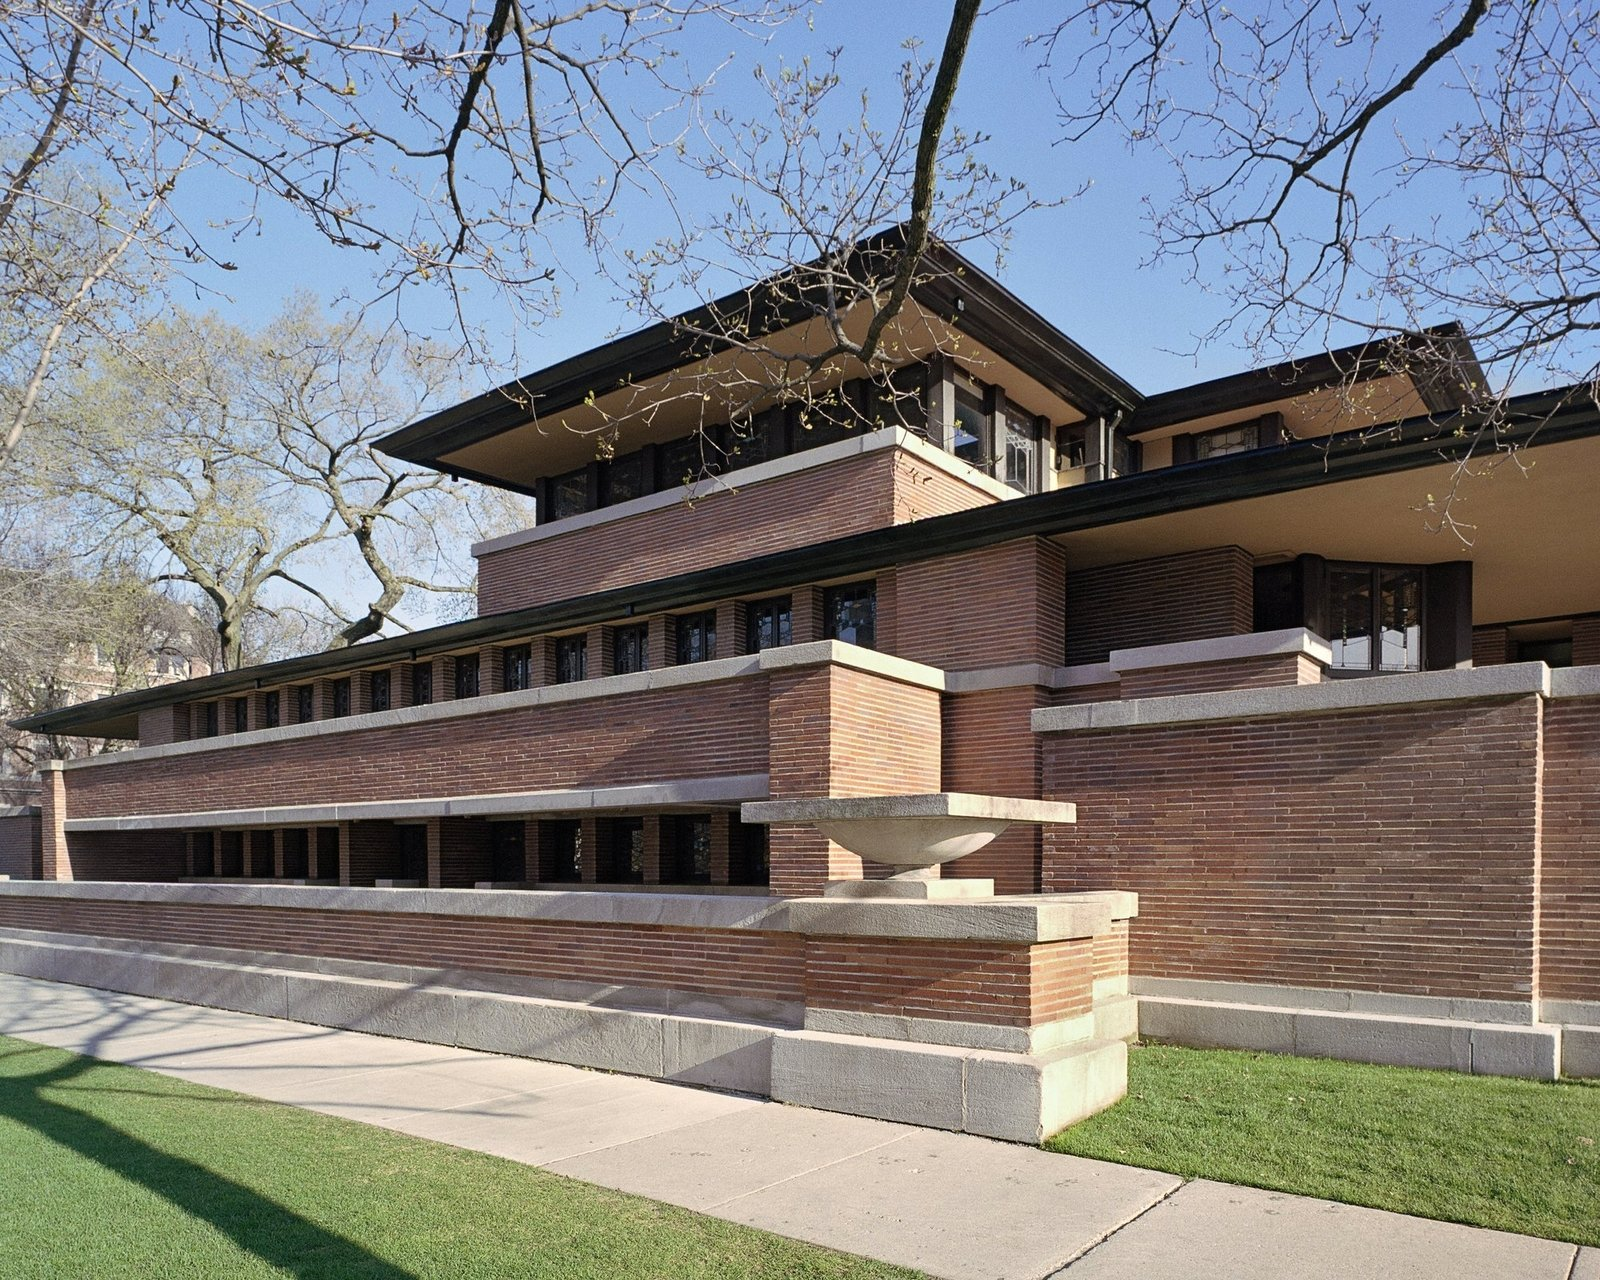 Frank Lloyd Wright buildings